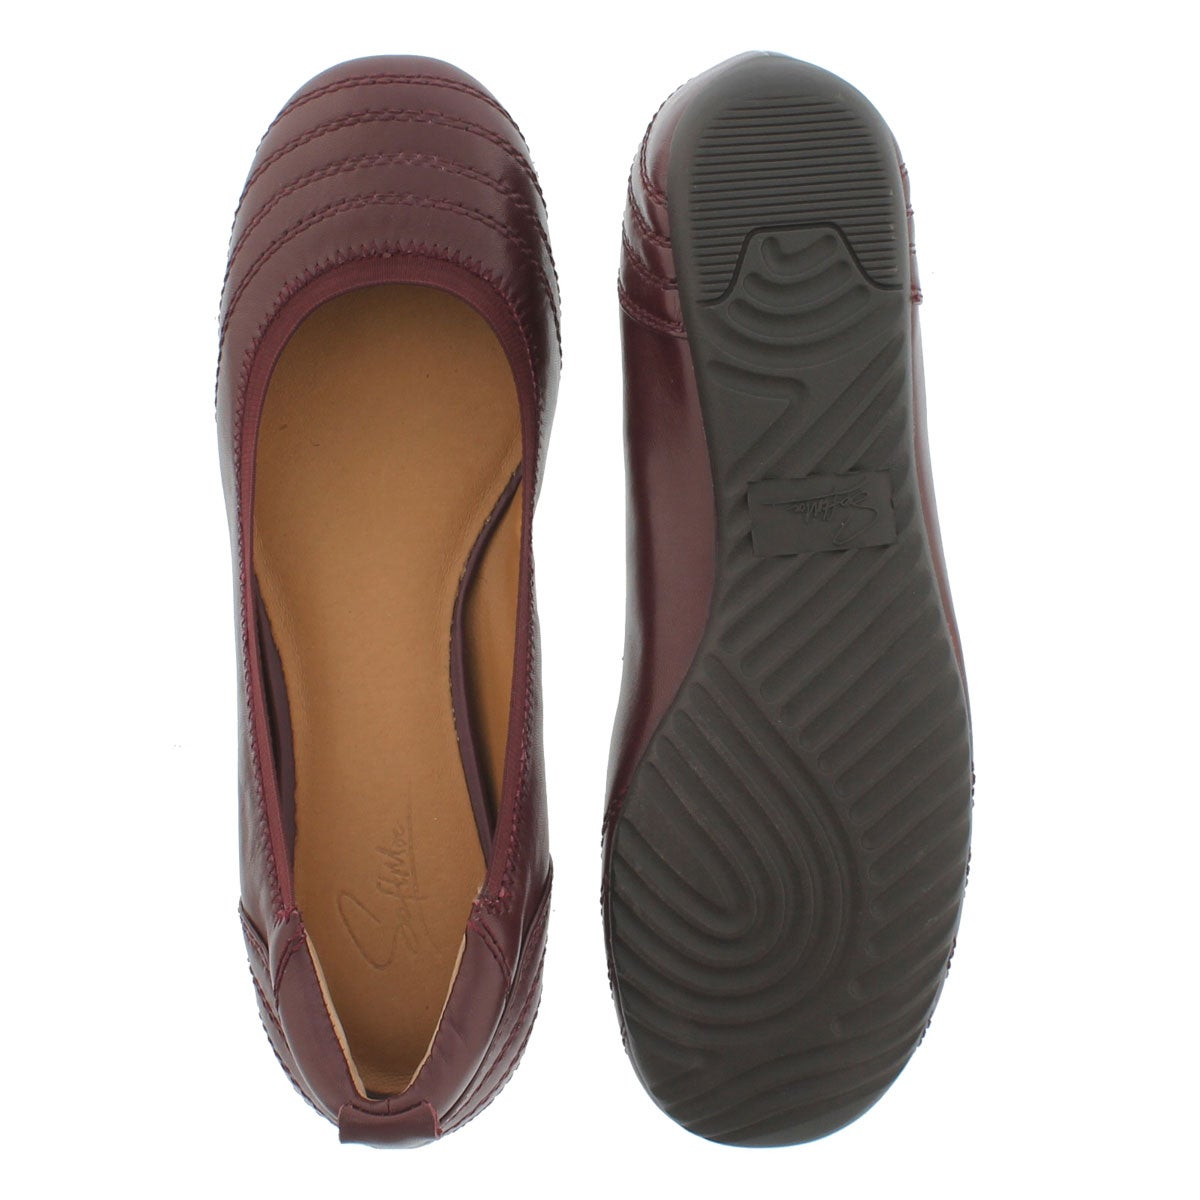 Lds Dasha burgundy ballerina flat-wide